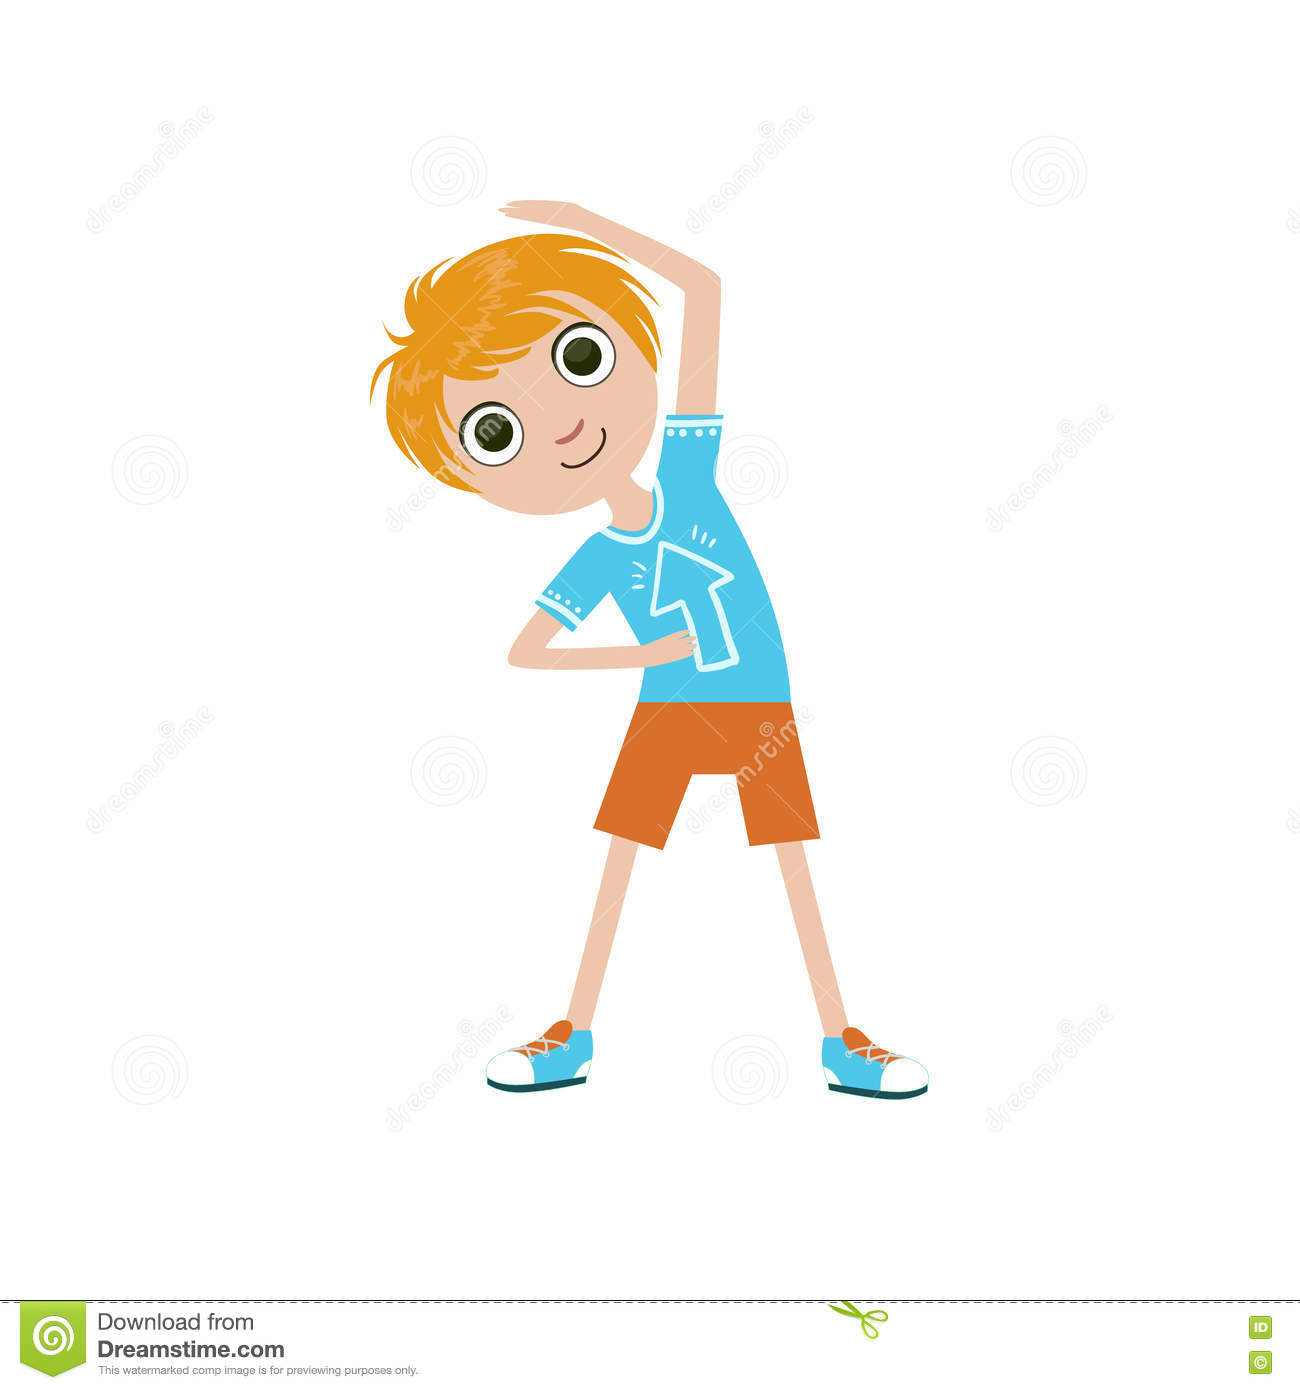 Boy Doing Stretching Exercise Stock Vector Illustration Of Illustration Exercise 72201237